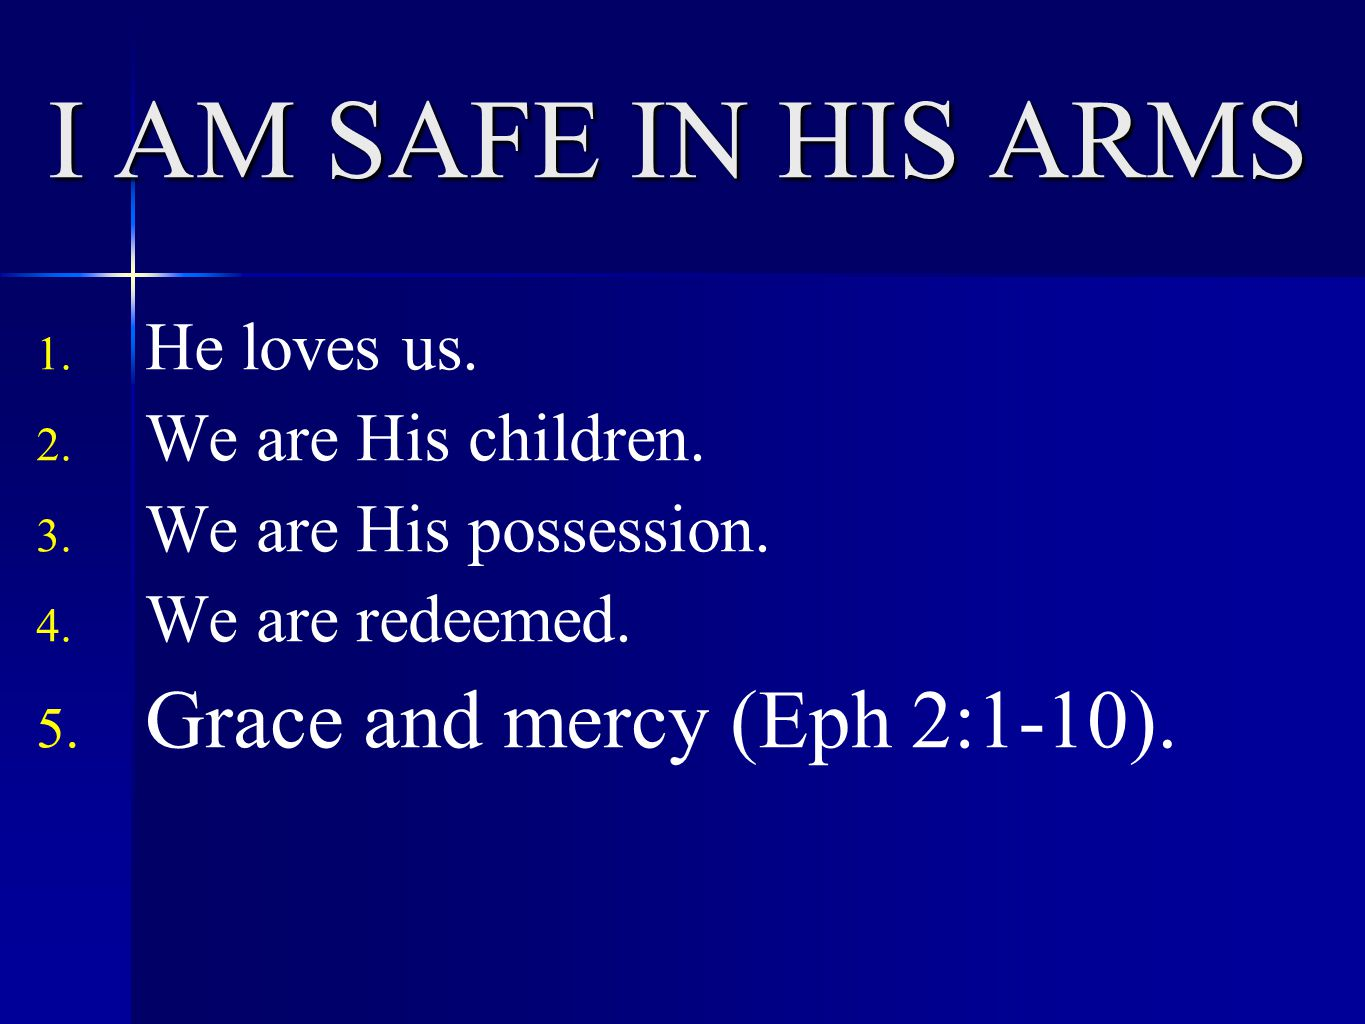 I AM SAFE IN HIS ARMS 1. He loves us. 2. We are His children. 3. We are His possession. 4. We are redeemed. 5. Grace and mercy (Eph 2:1-10).